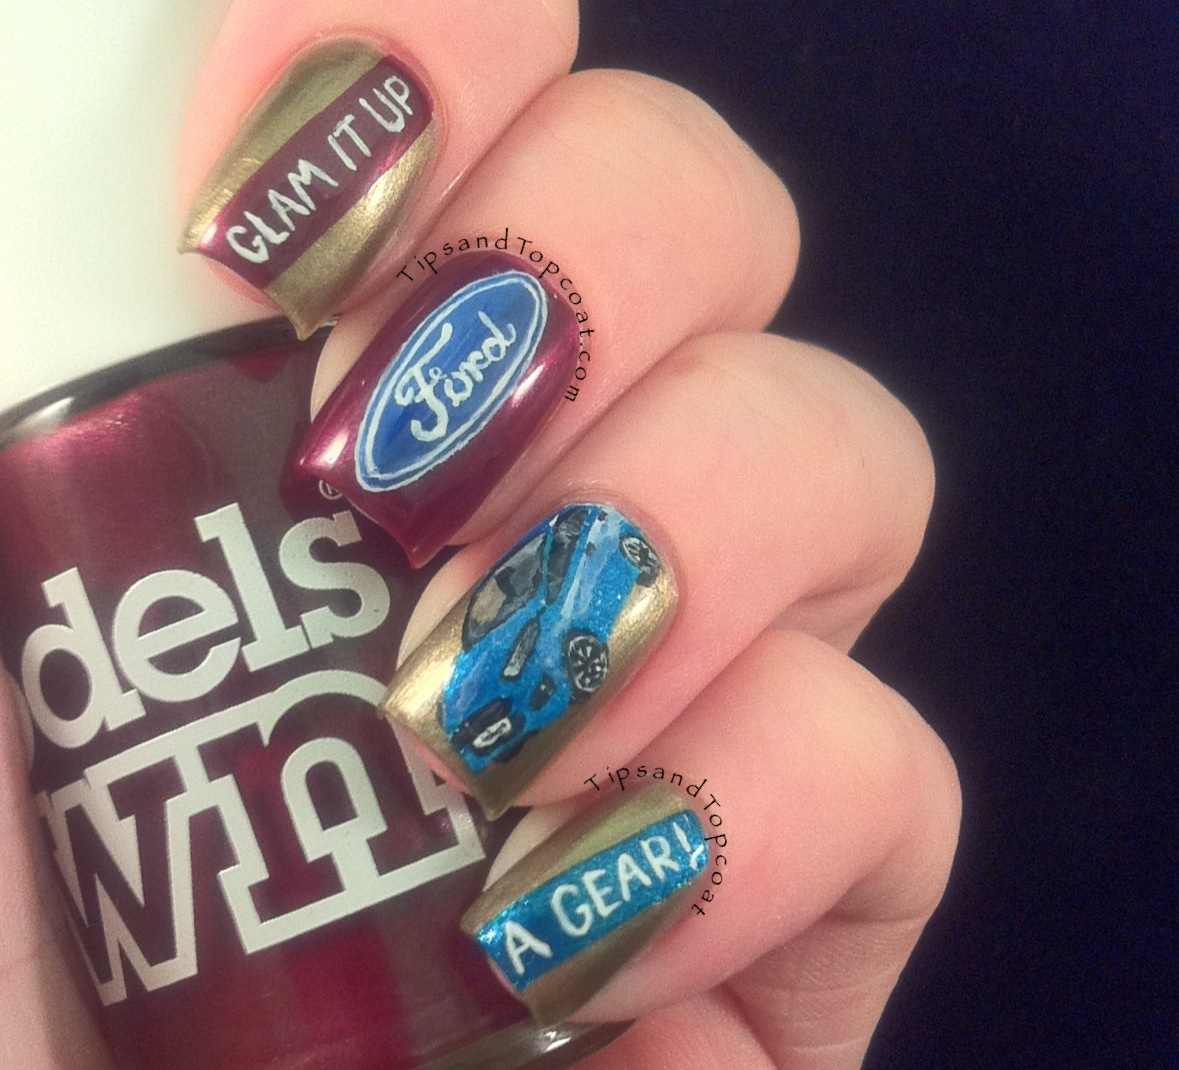 Country Girl Nail Designs So ill start with the nail art